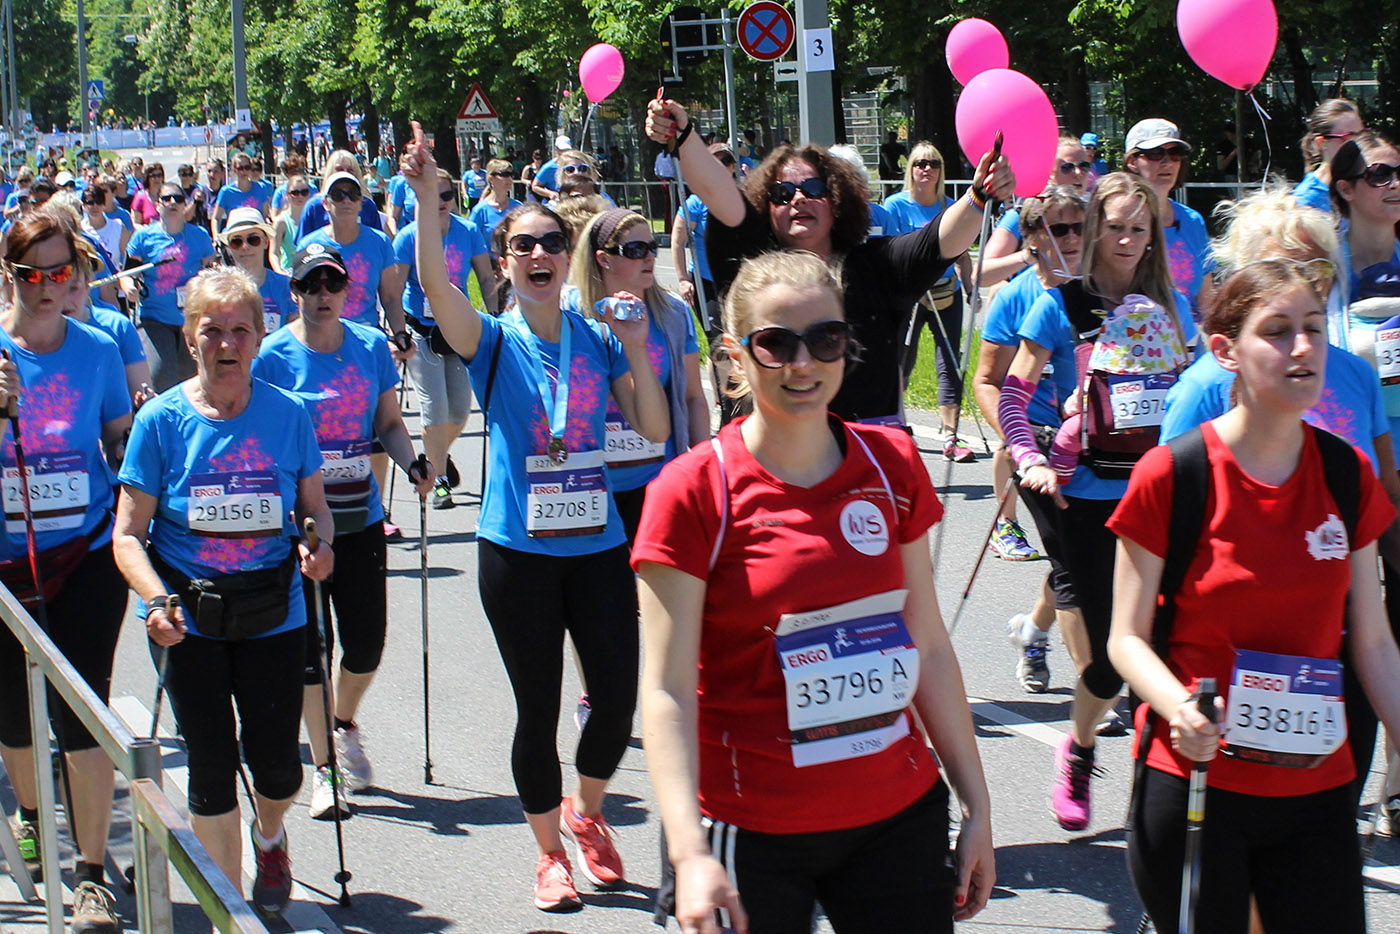 Team Frauenlauf in Aktion